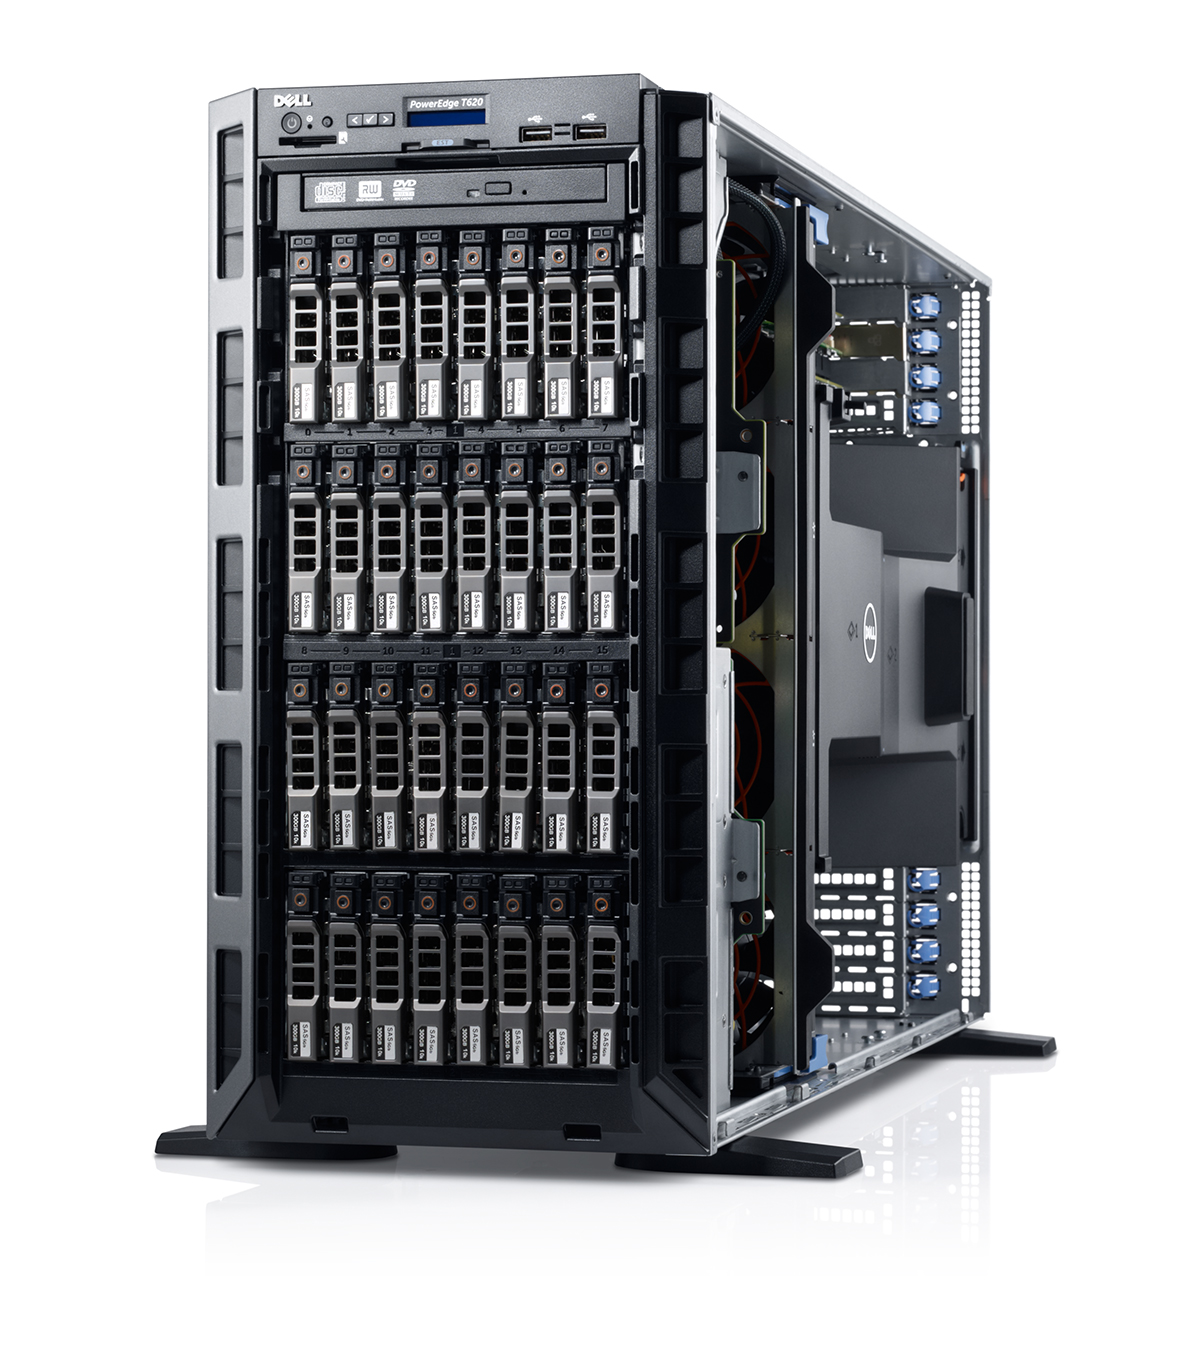 MÁY CHỦ DELL POWEREDGE T630